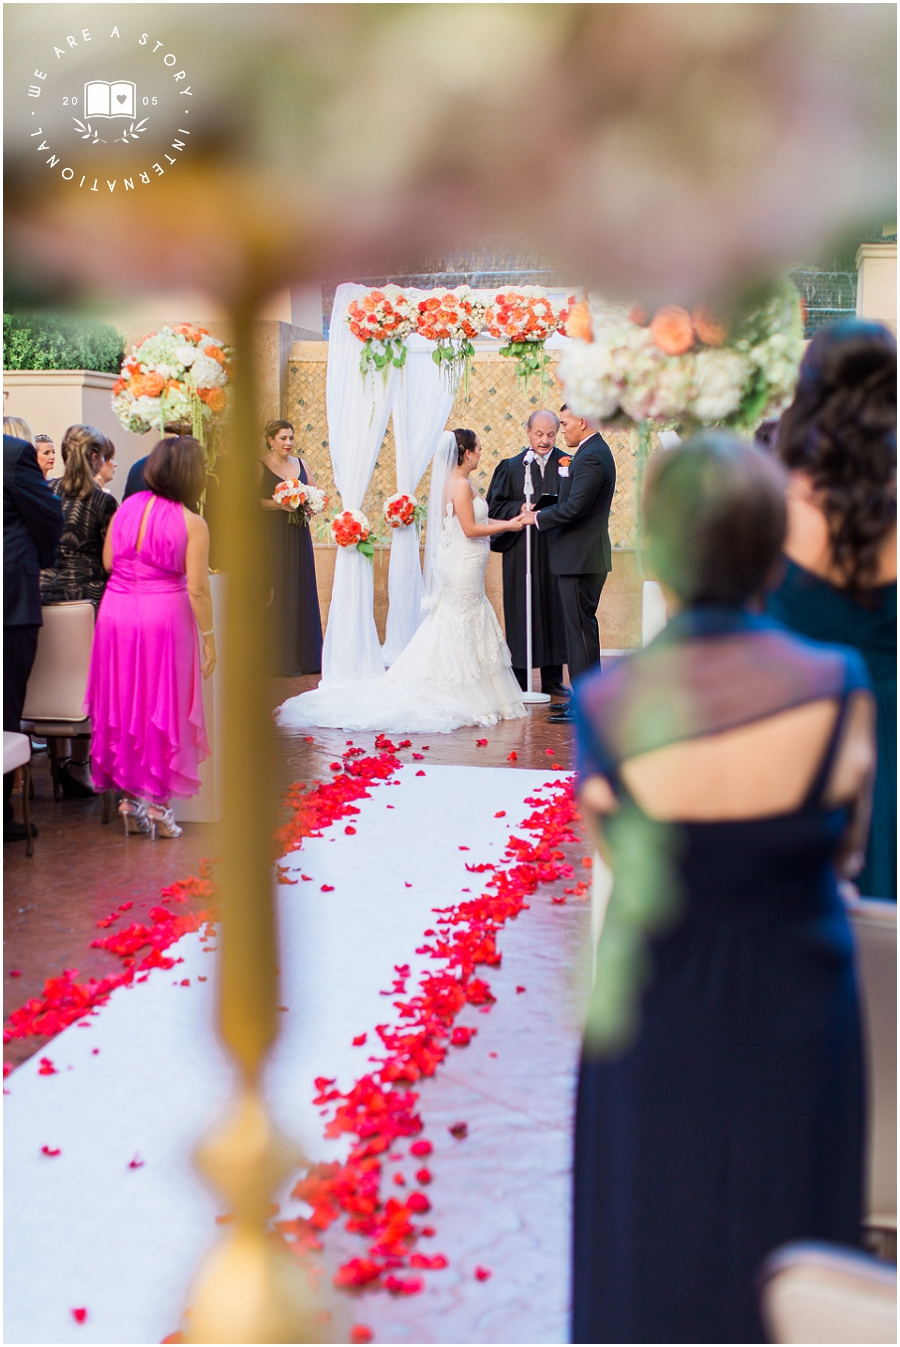 Four Seasons wedding photographer Las Vegas _ We Are A Story wedding photographer_2494.jpg